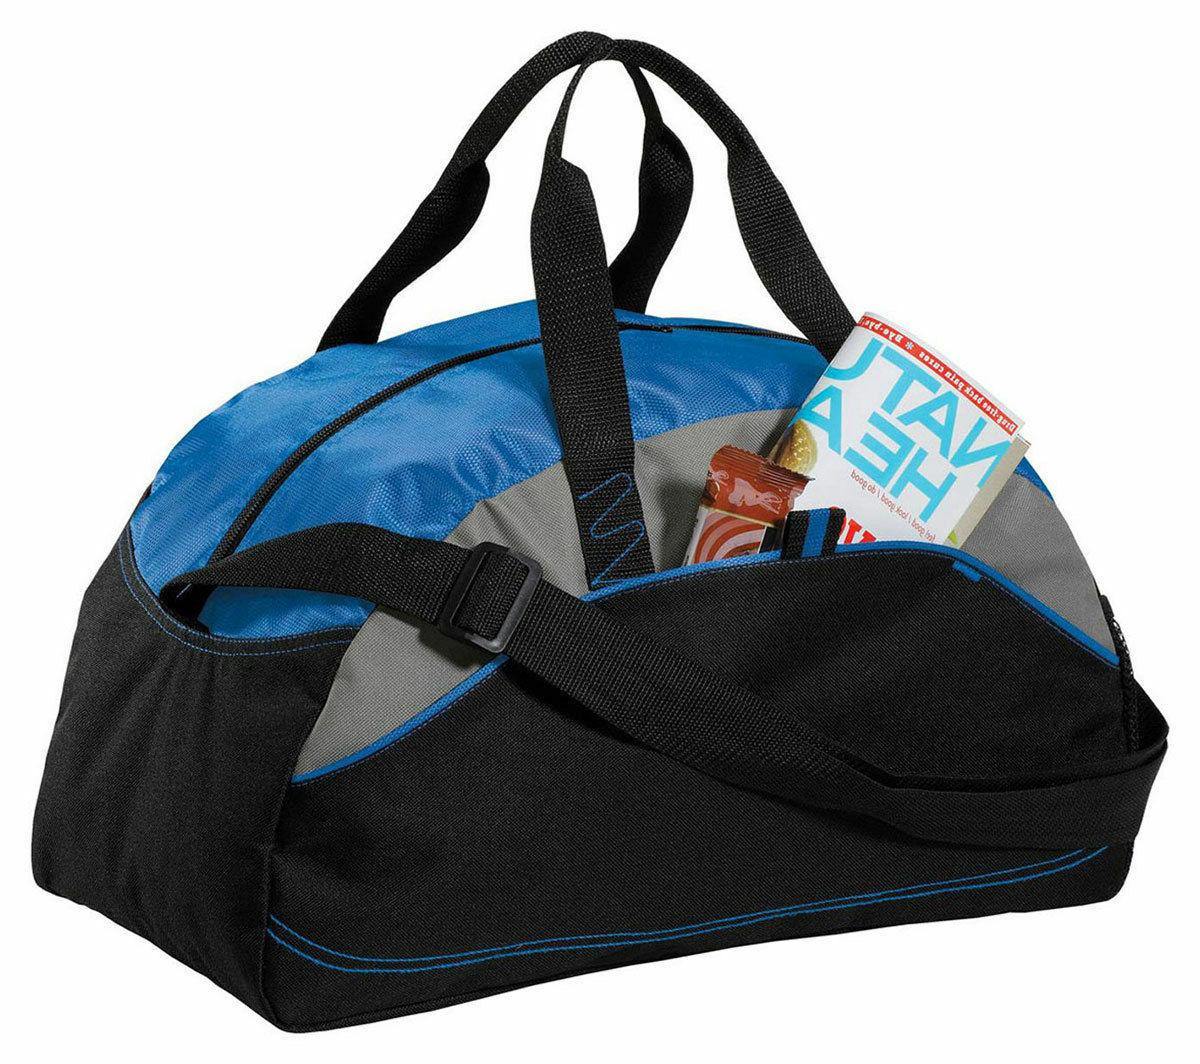 new port and company improved small duffel